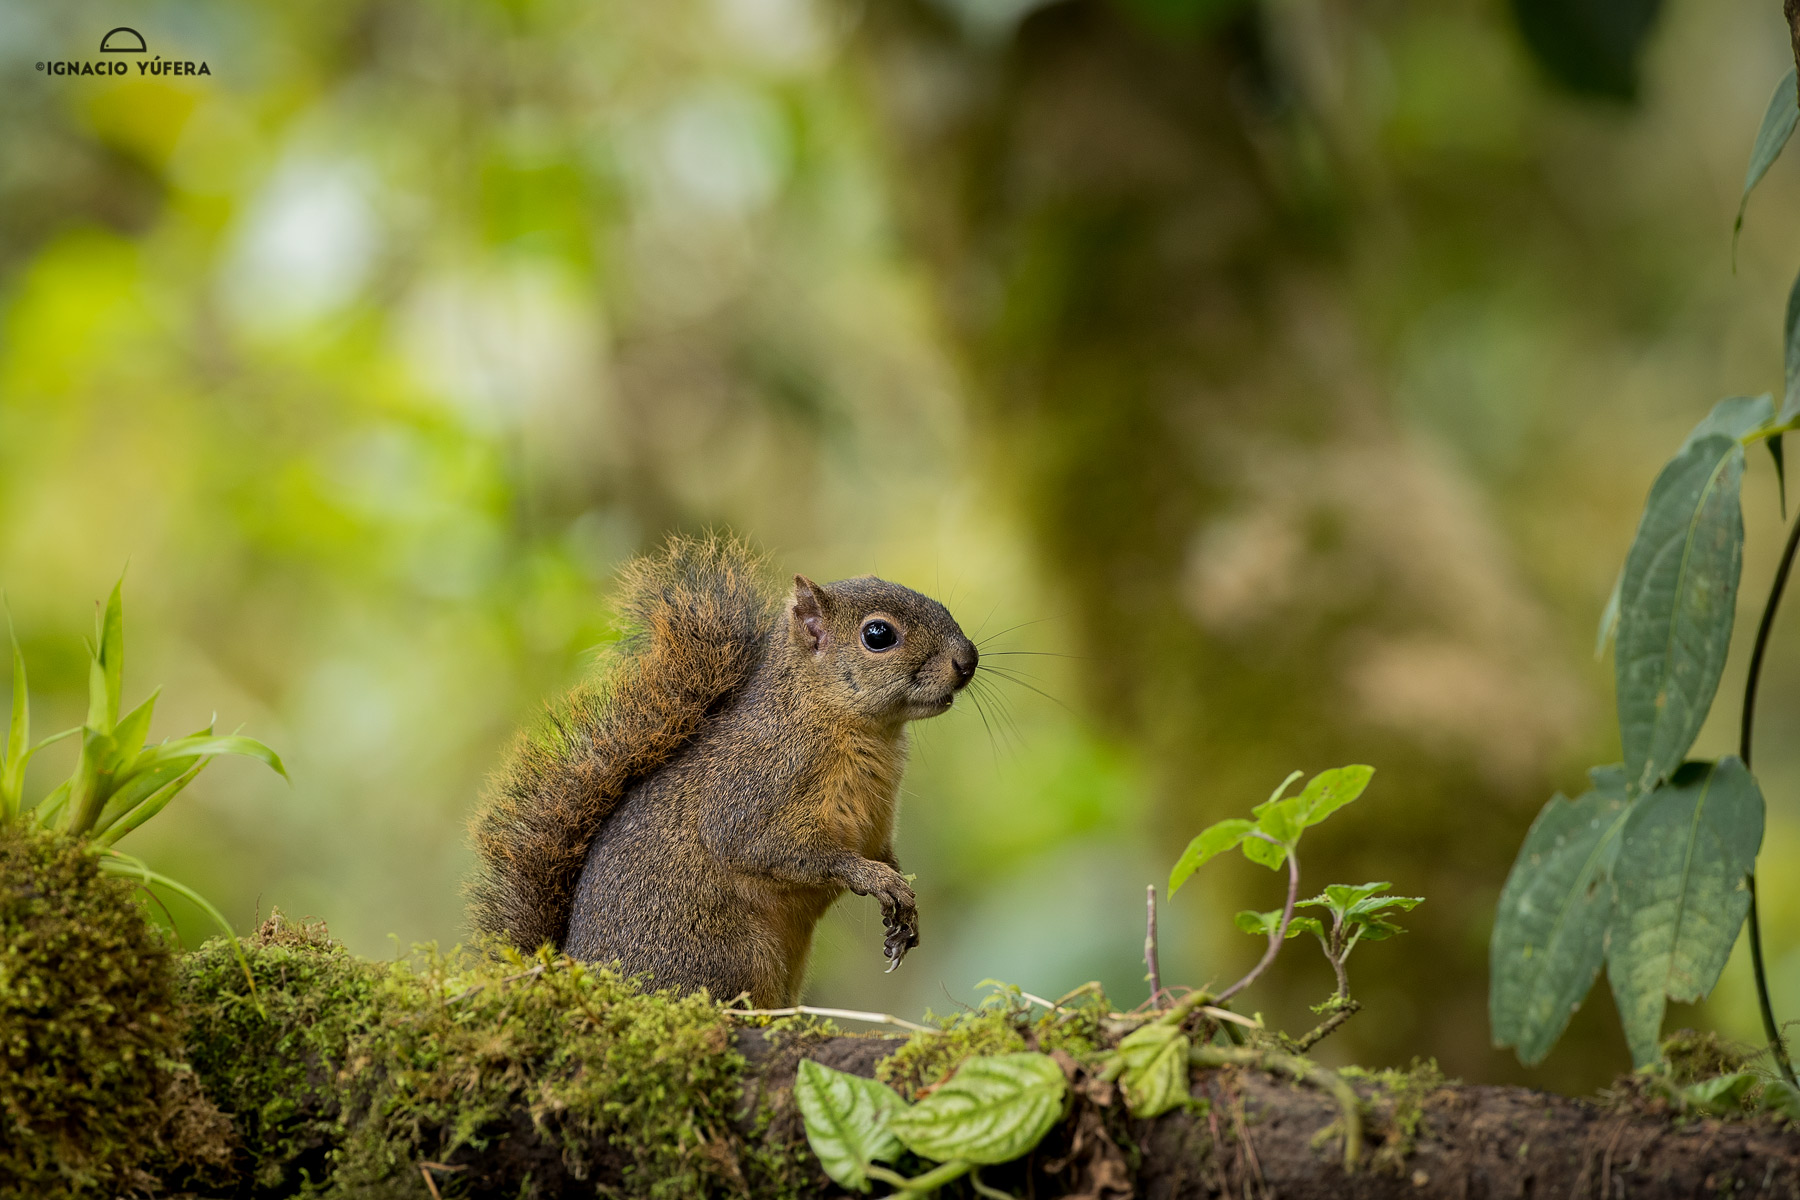 Red-tailed Squirrel (Sciurus granatensis), Chiriqui highlands